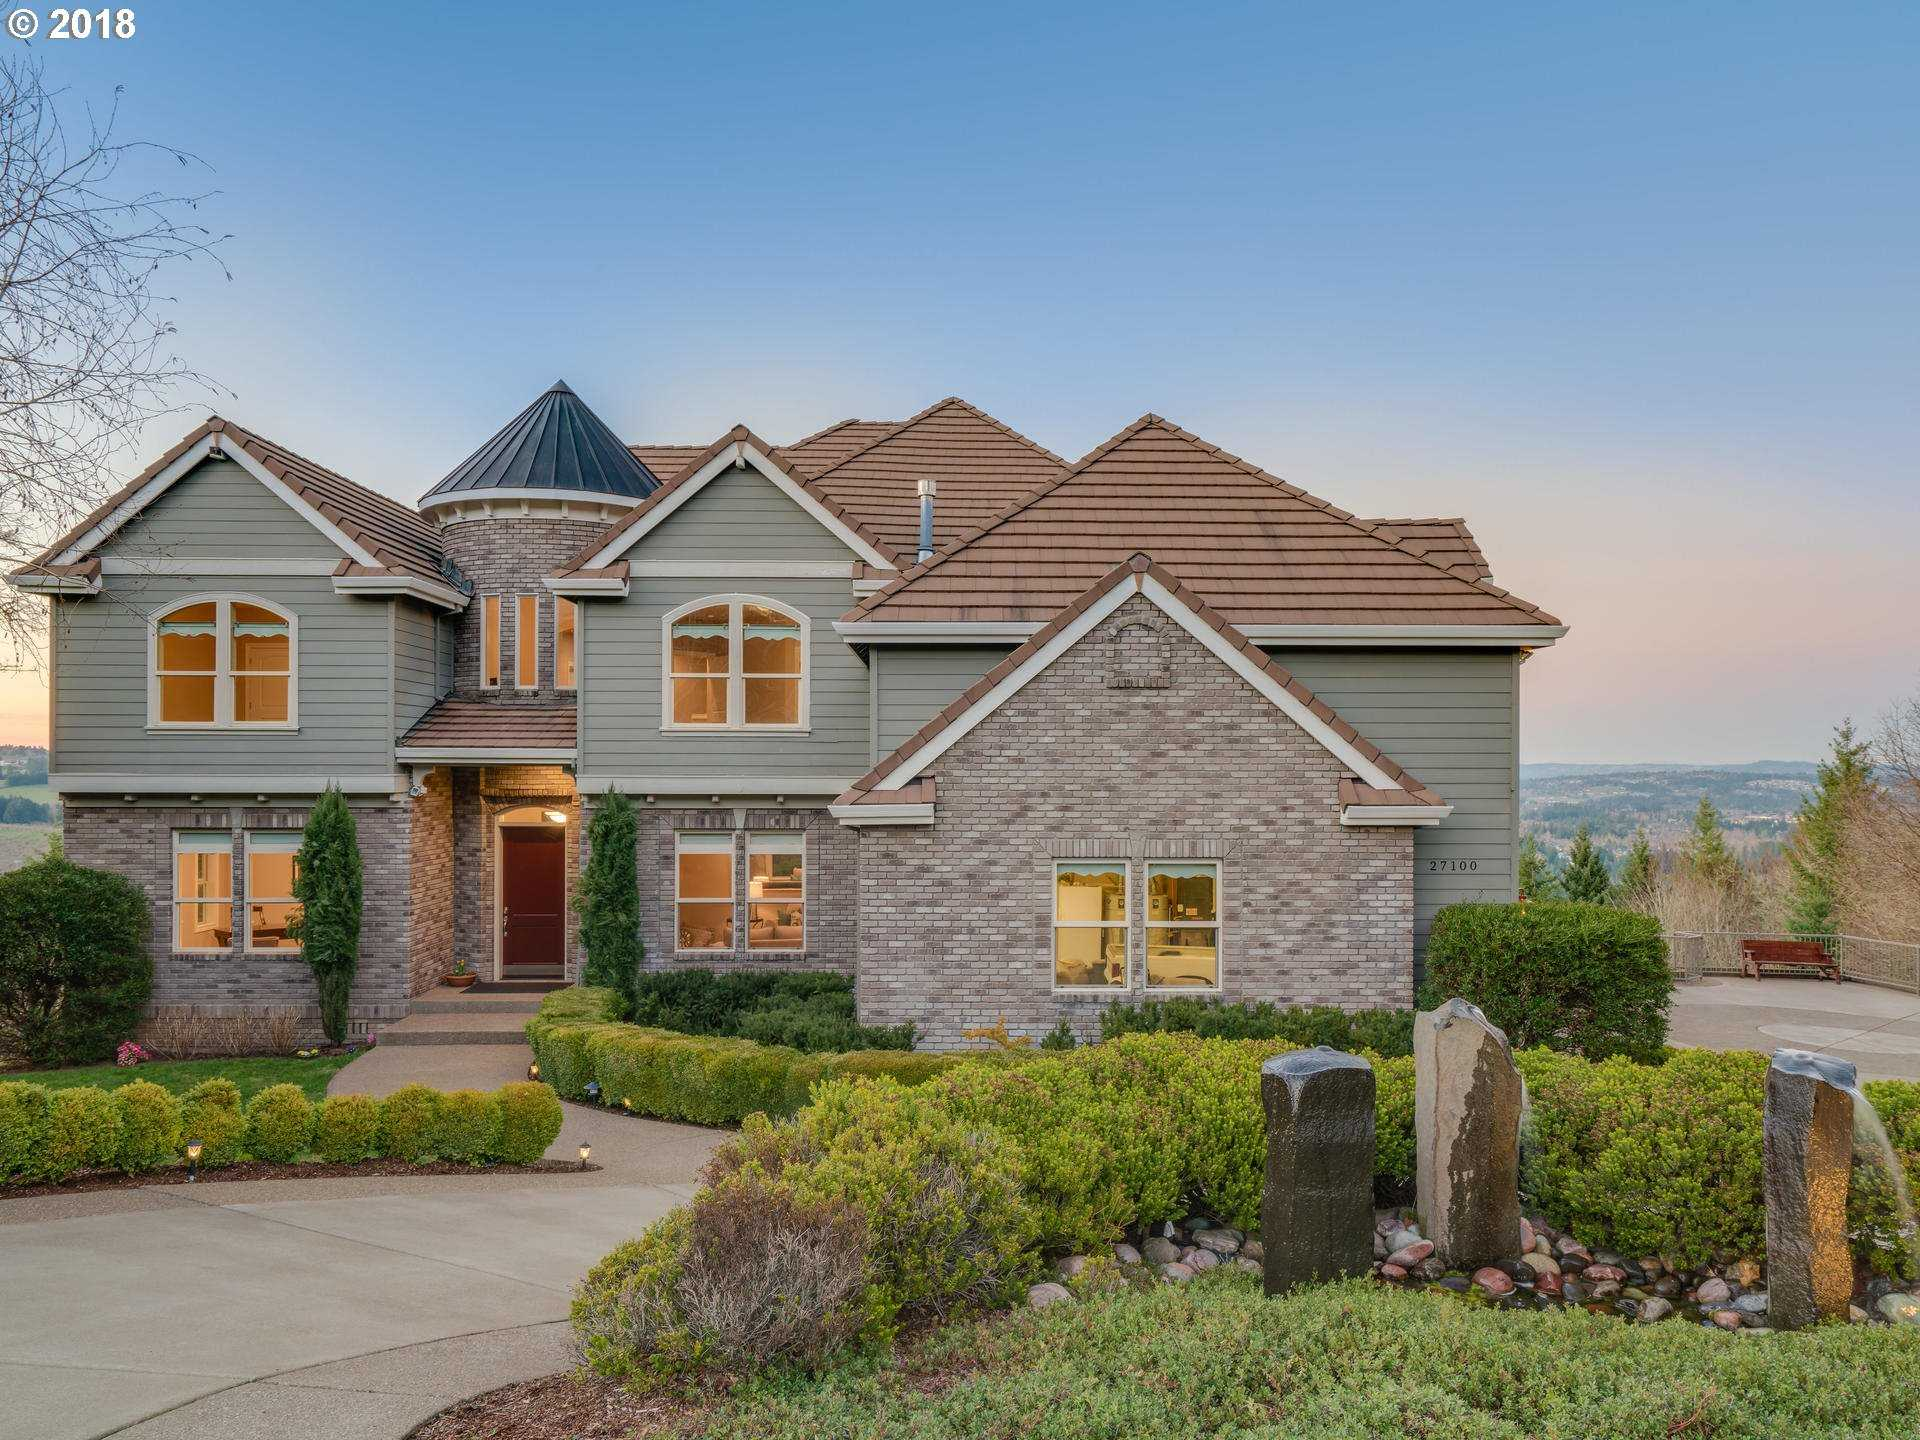 $1,450,000 - 6Br/6Ba -  for Sale in Parrett Mountain View Estates, Sherwood